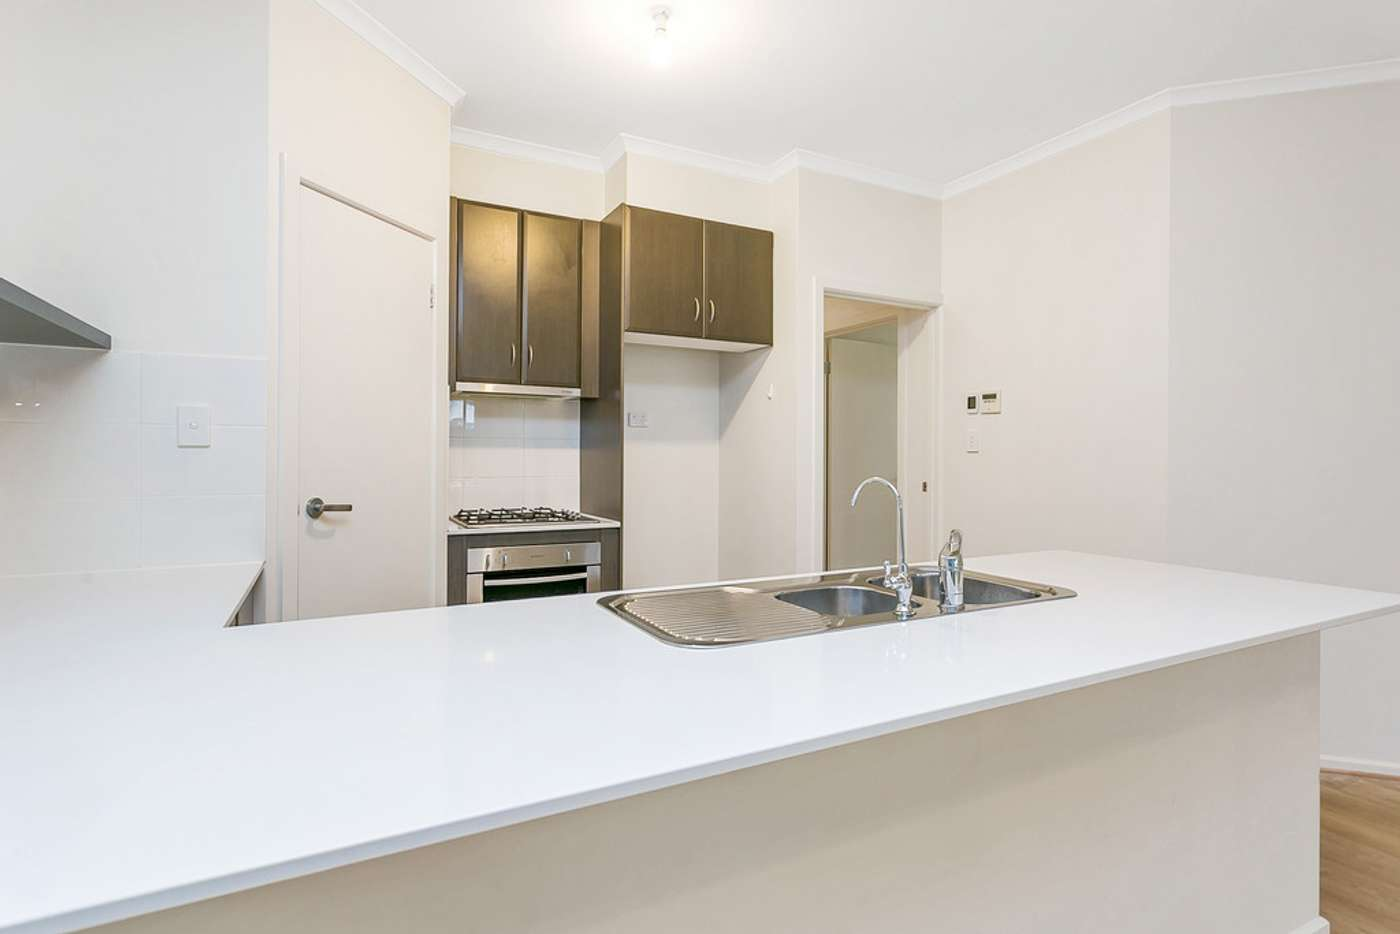 Sixth view of Homely house listing, 13a Dalkeith Avenue, Morphett Vale SA 5162